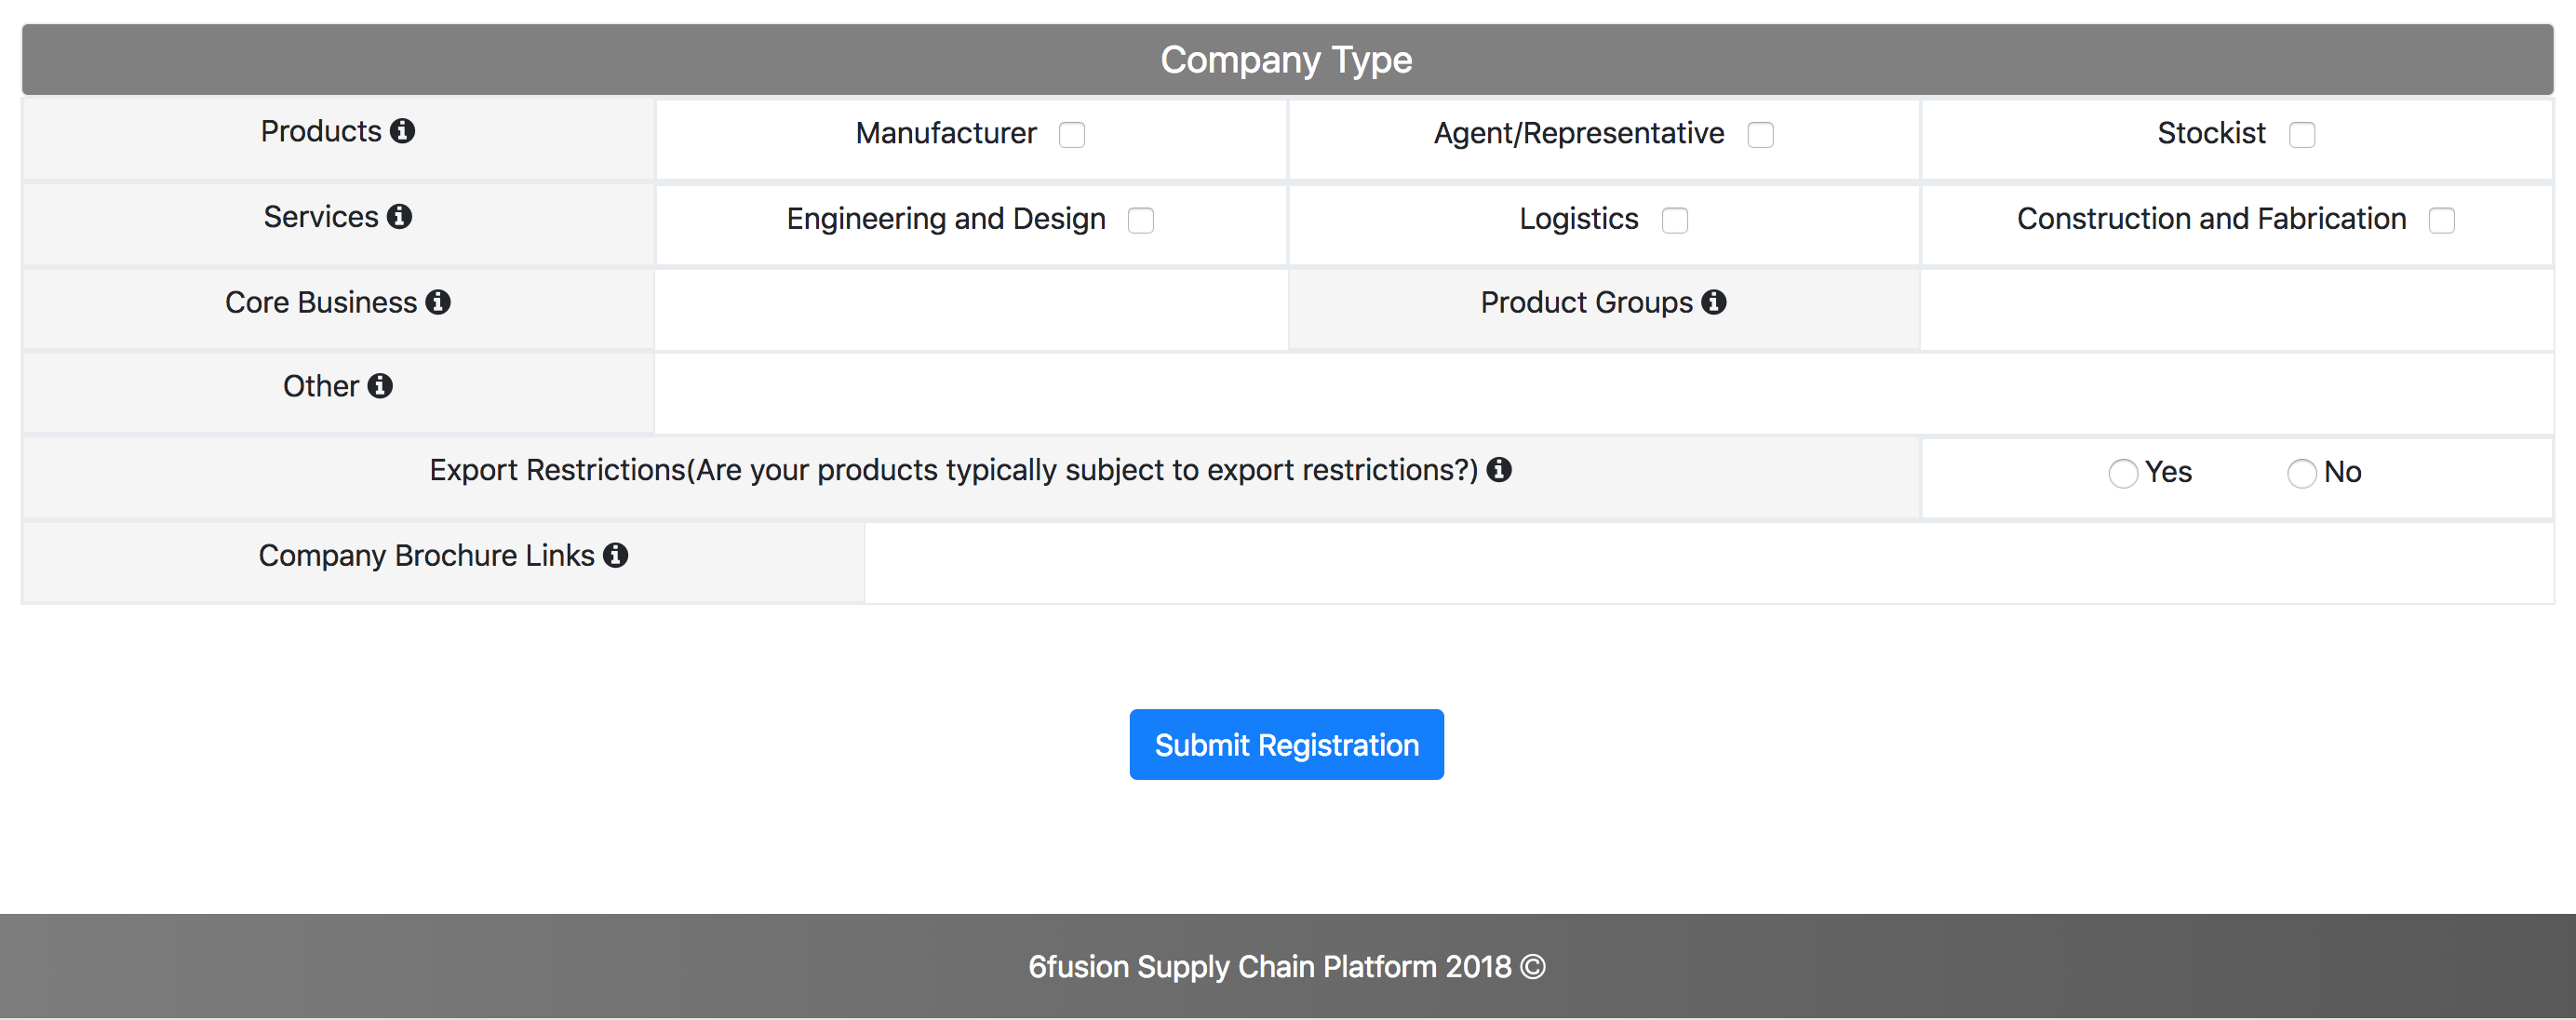 Company registration form2